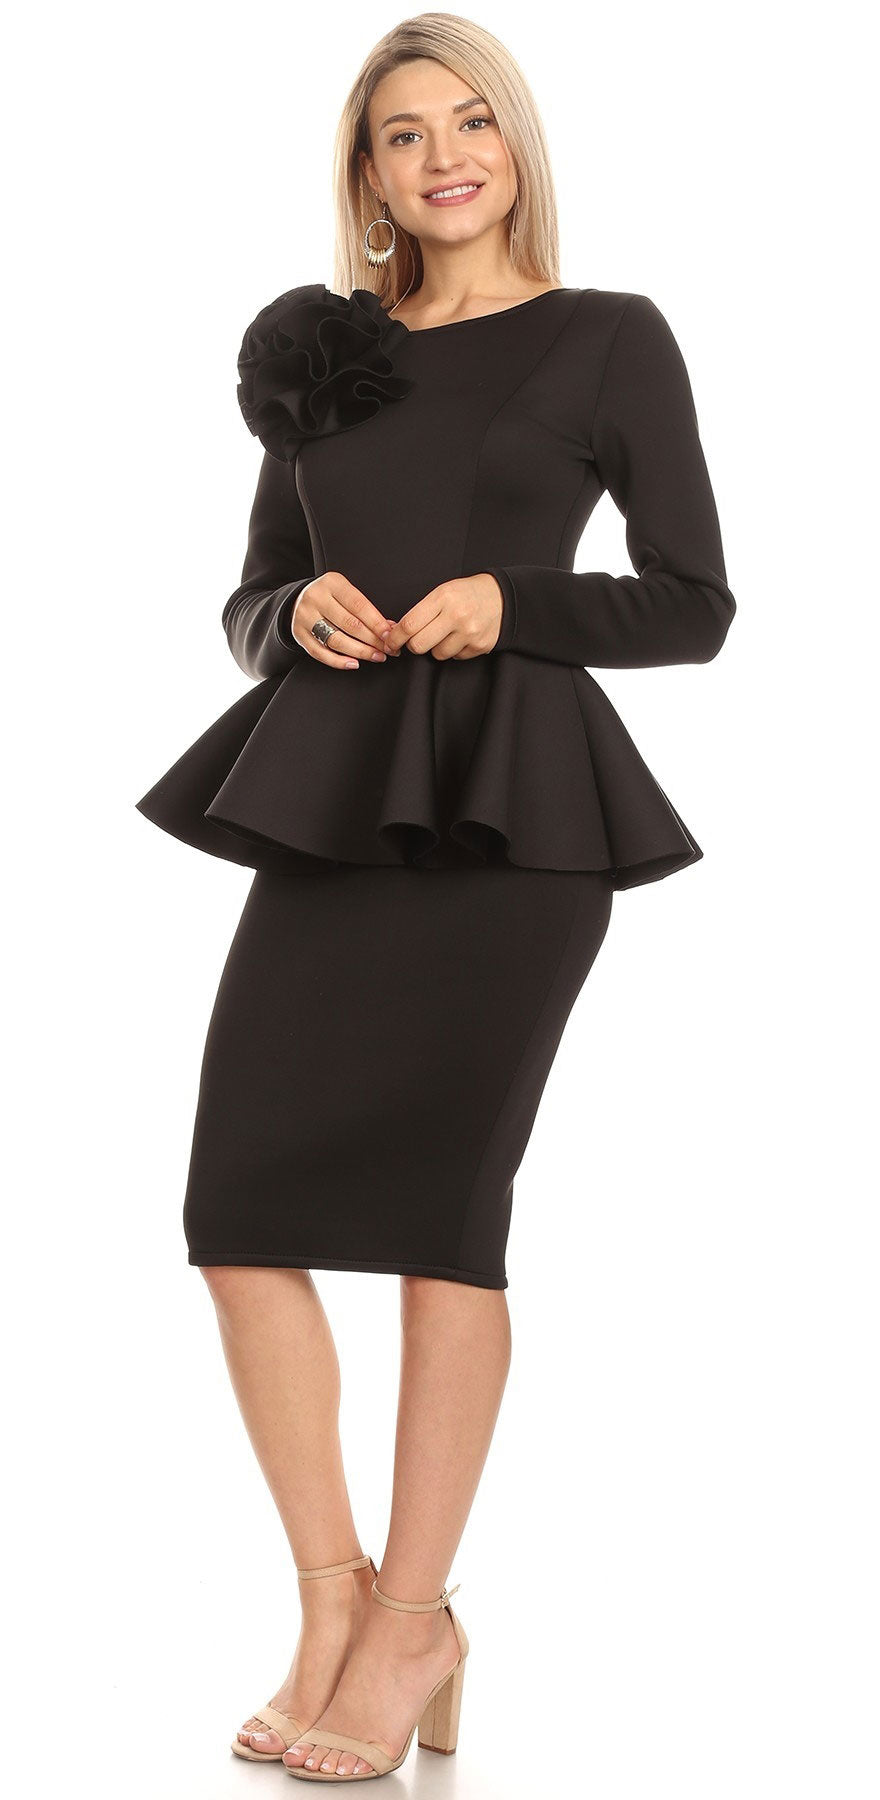 Karen T Dress 2056T-Black - Church Suits For Less